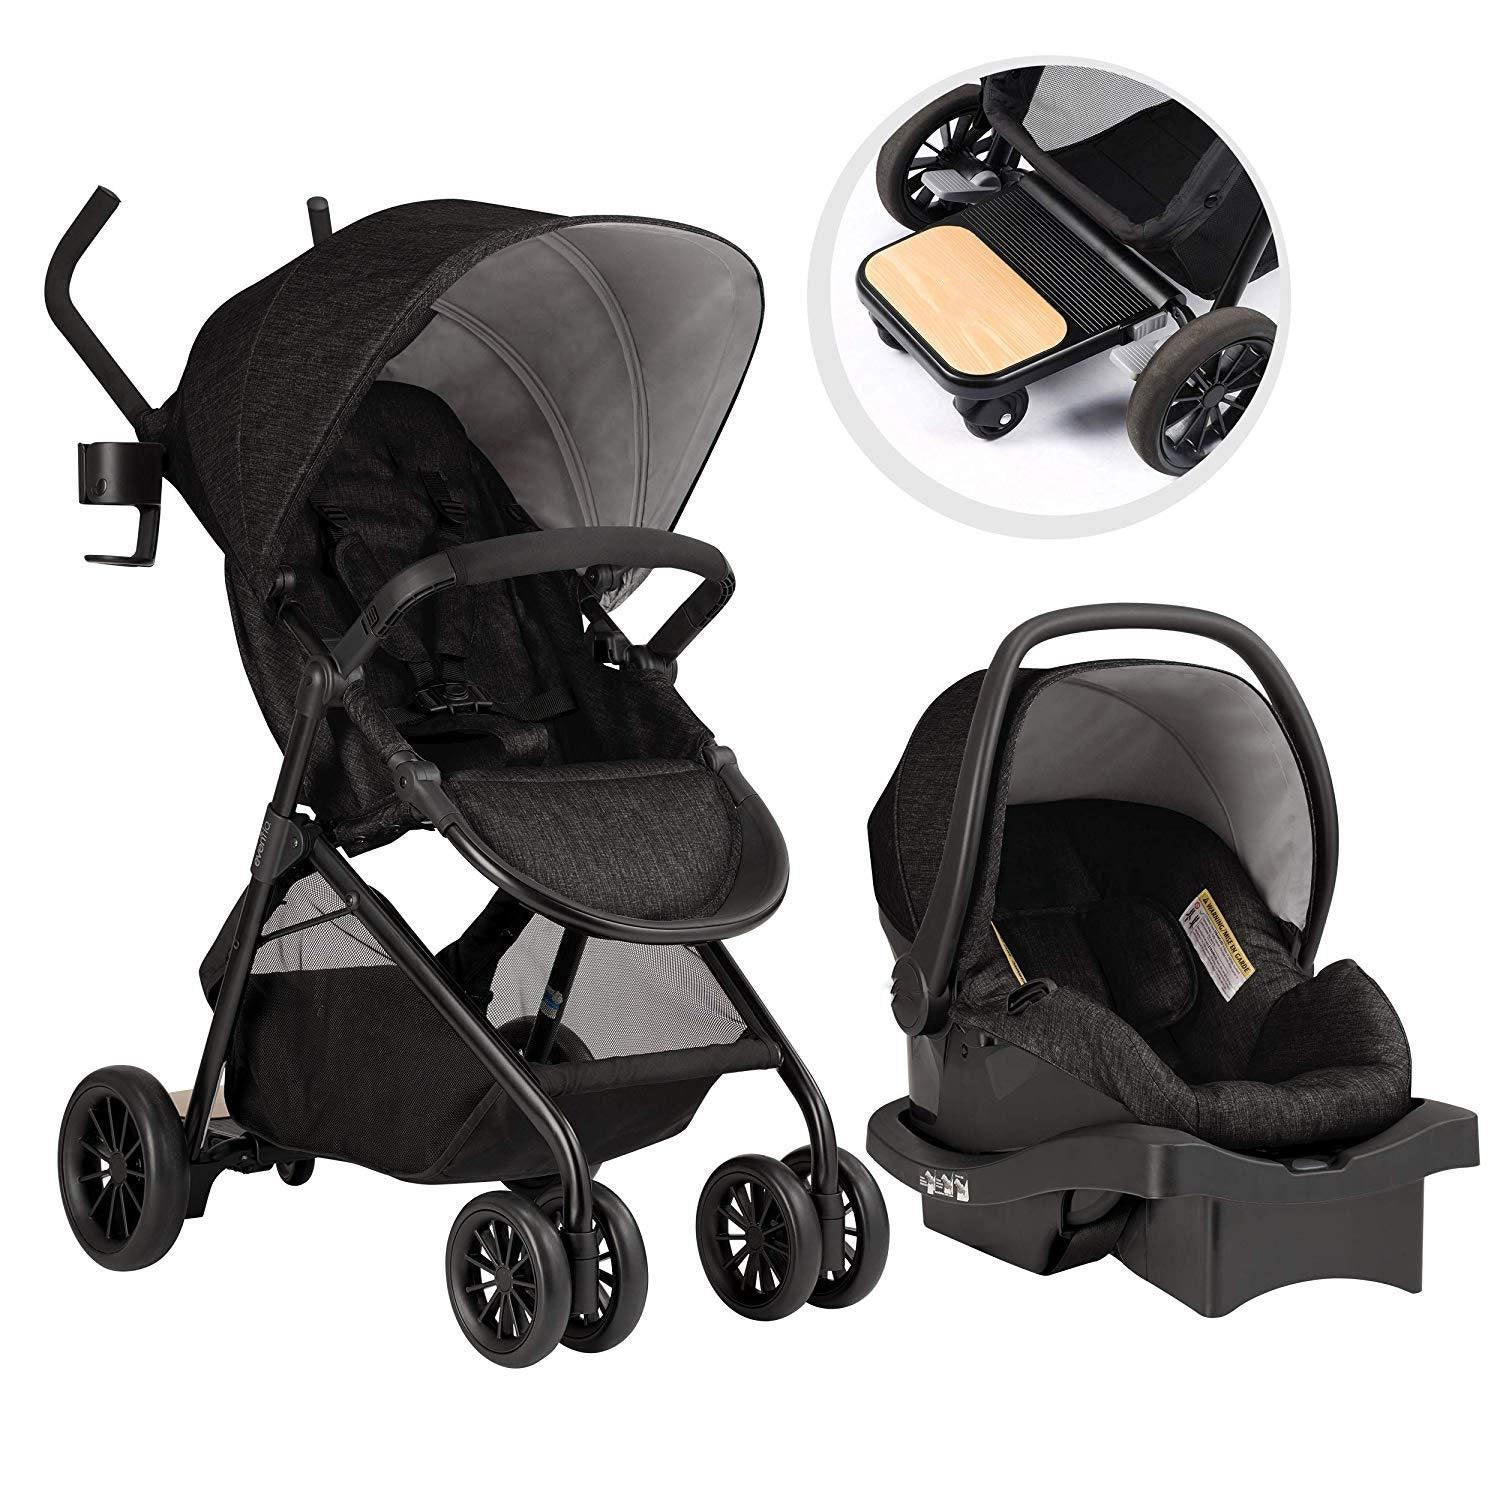 Baby Stroller With Extra-Long Sport Style Handles